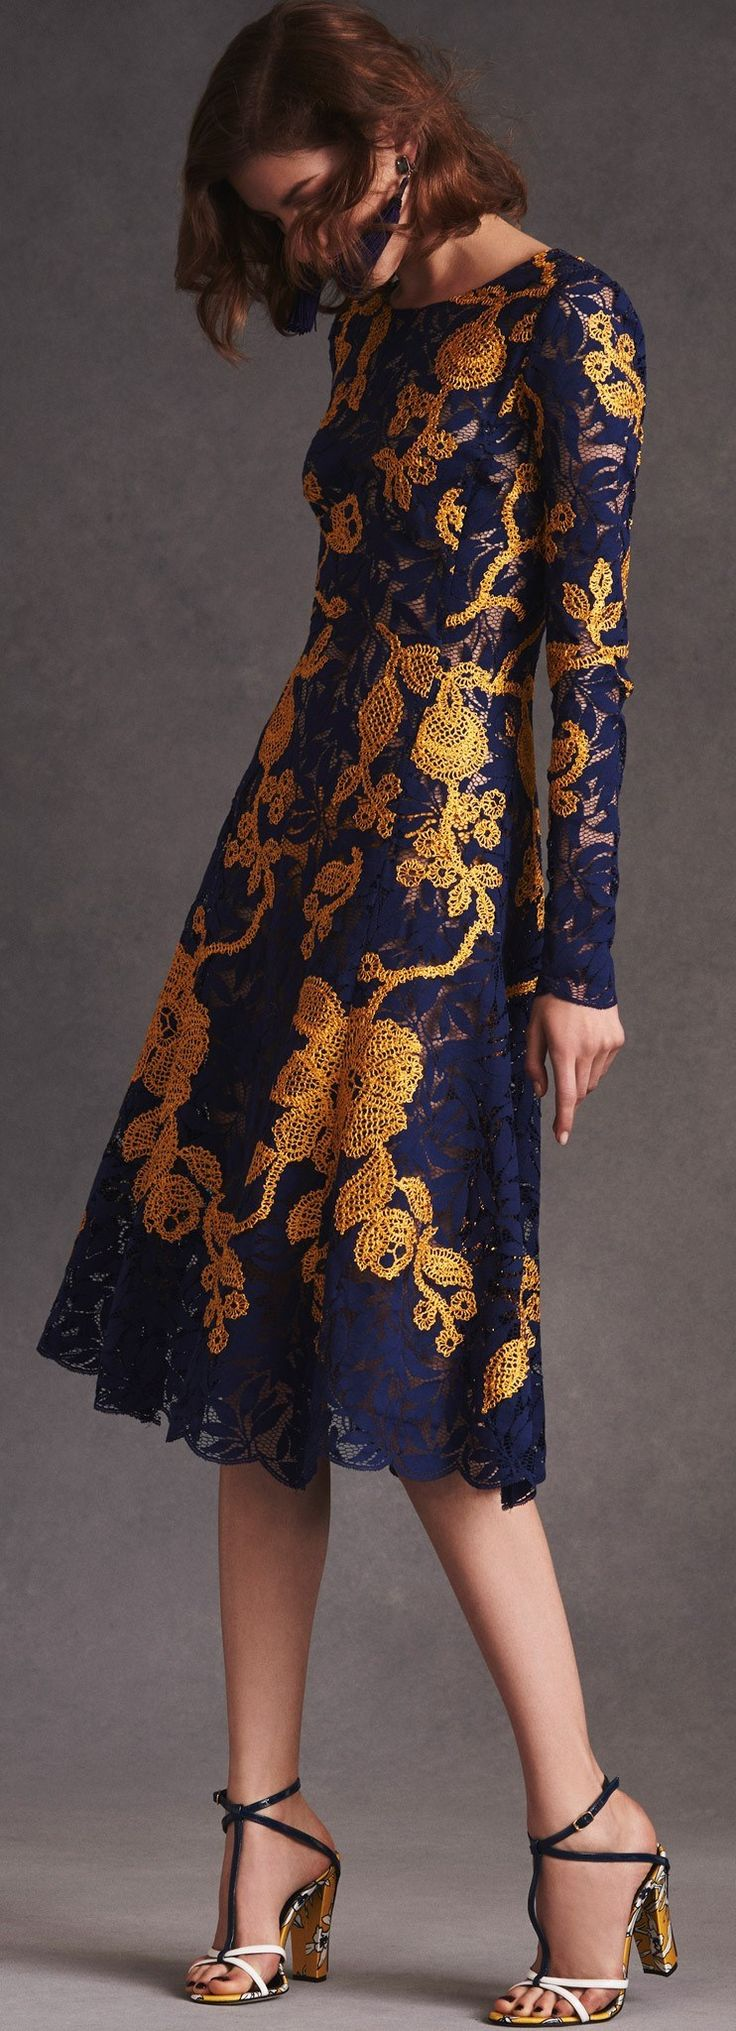 Oscar de la Renta Resort 2016 women fashion outfit clothing style apparel @roressclothes closet ideas